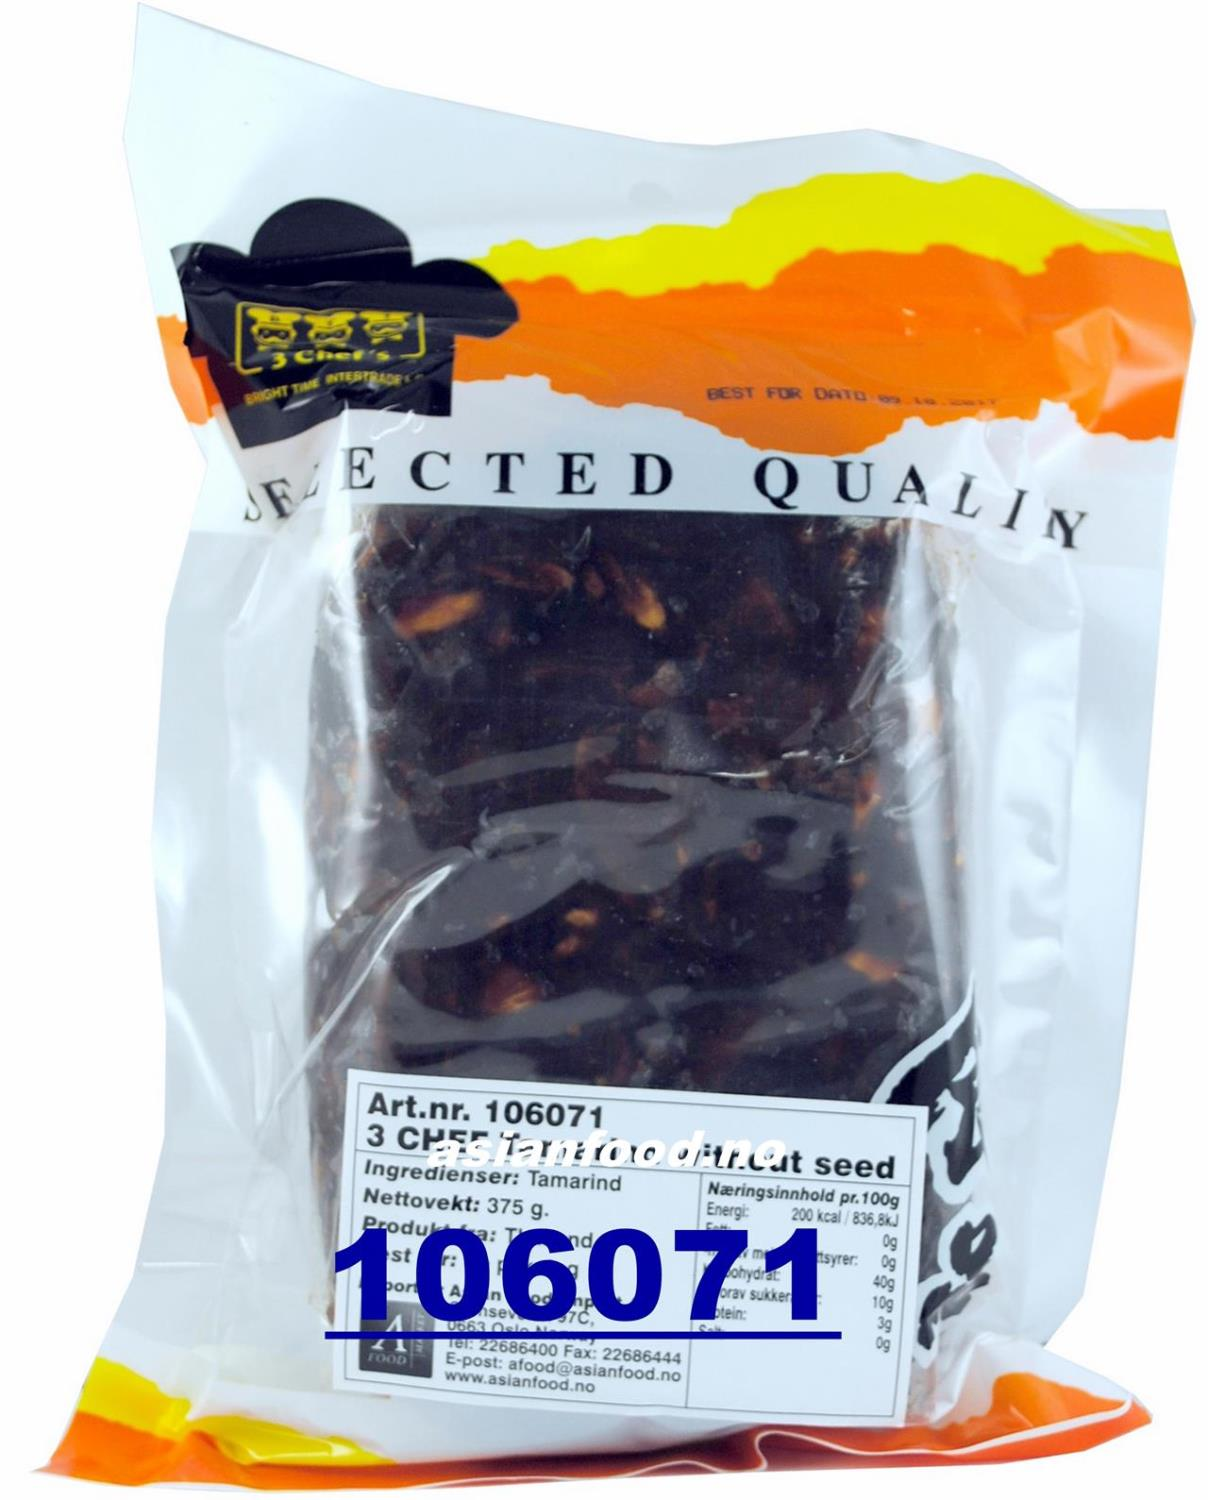 3 CHEFS Tamarind Without Seed 375g